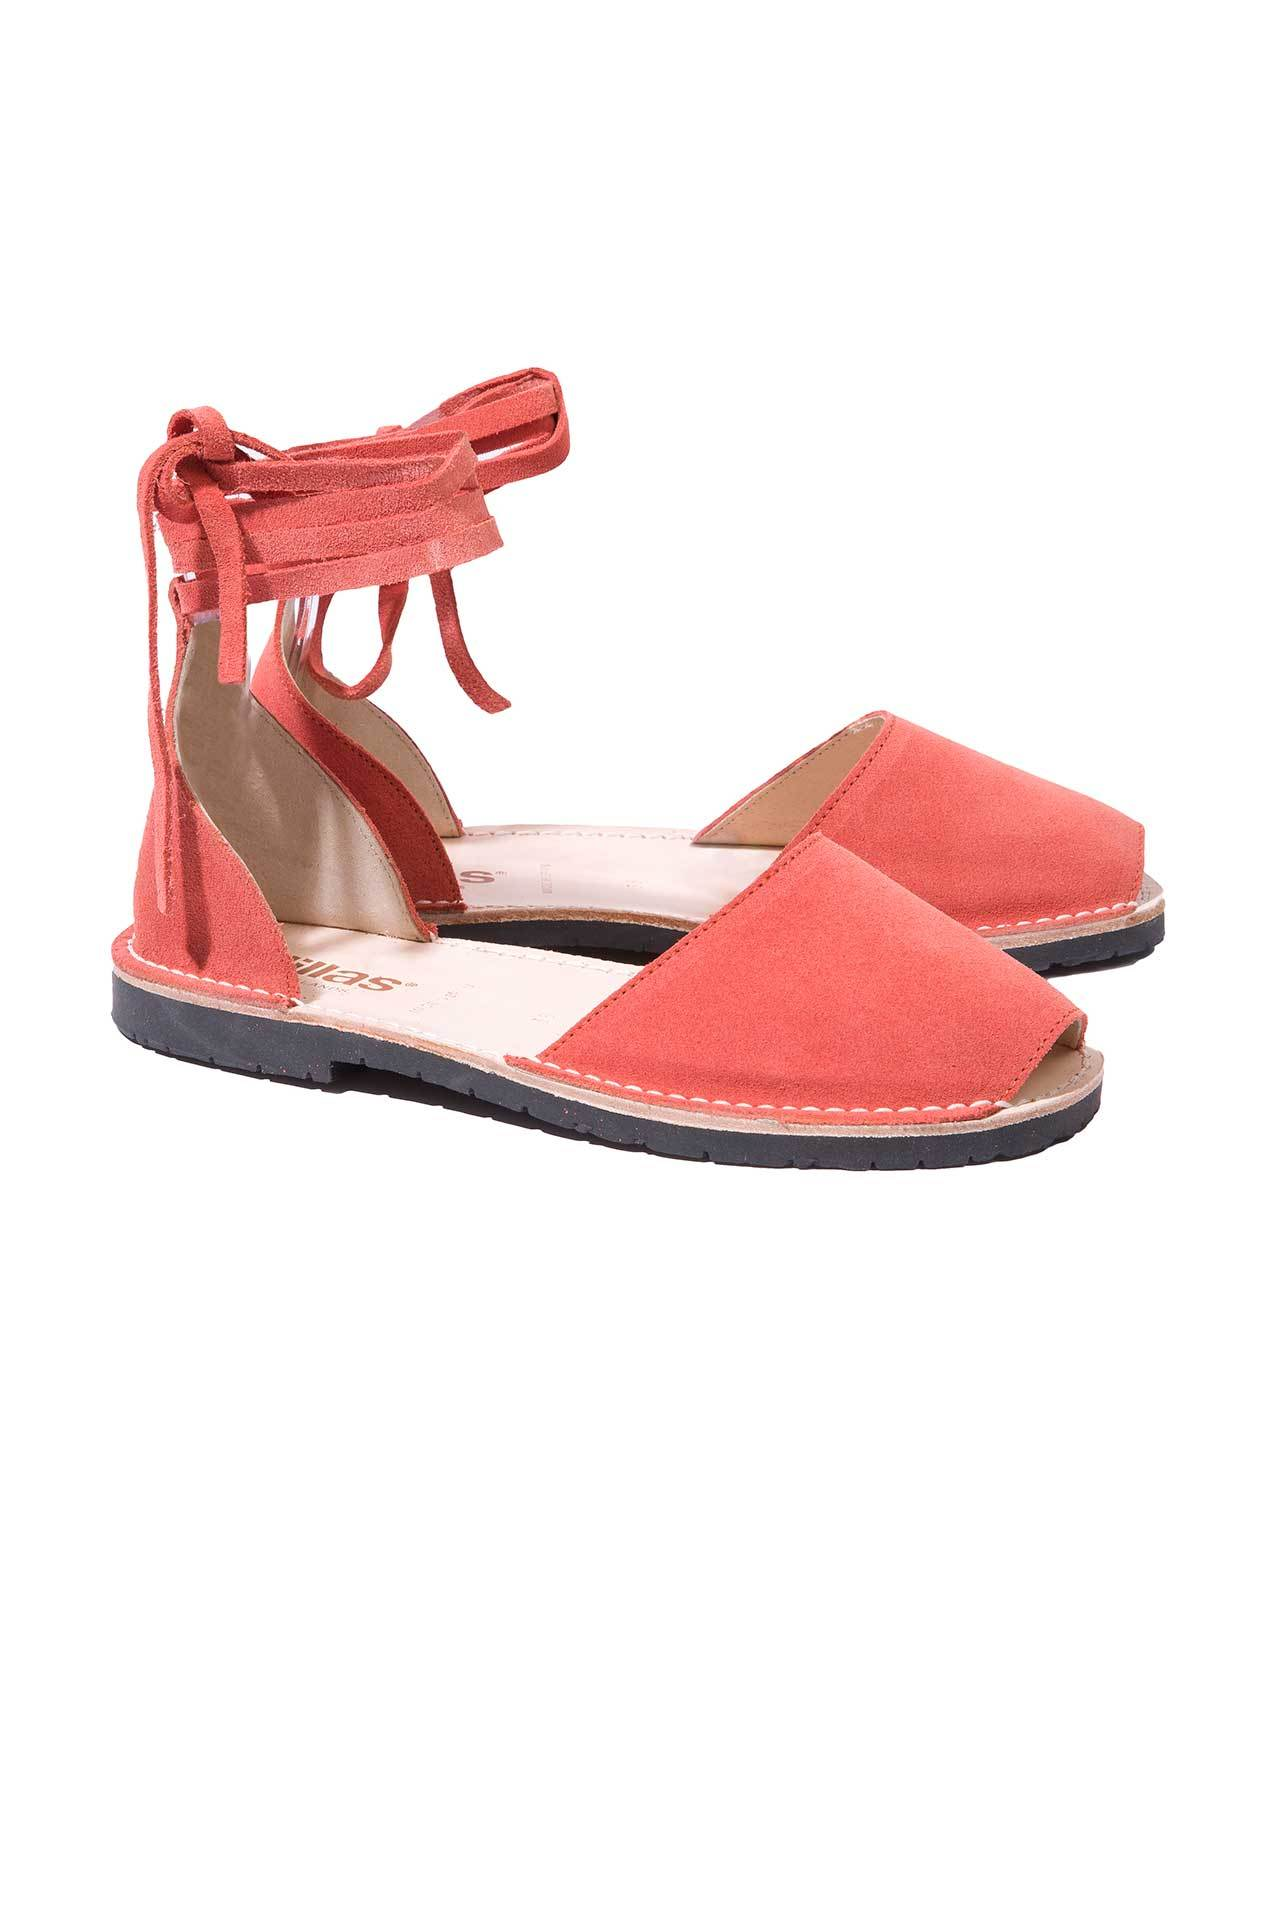 cheap pay with paypal 2014 new sale online Solillas Pink Suede Ankle Tie Menorcan Sandals xbAYh8IQg